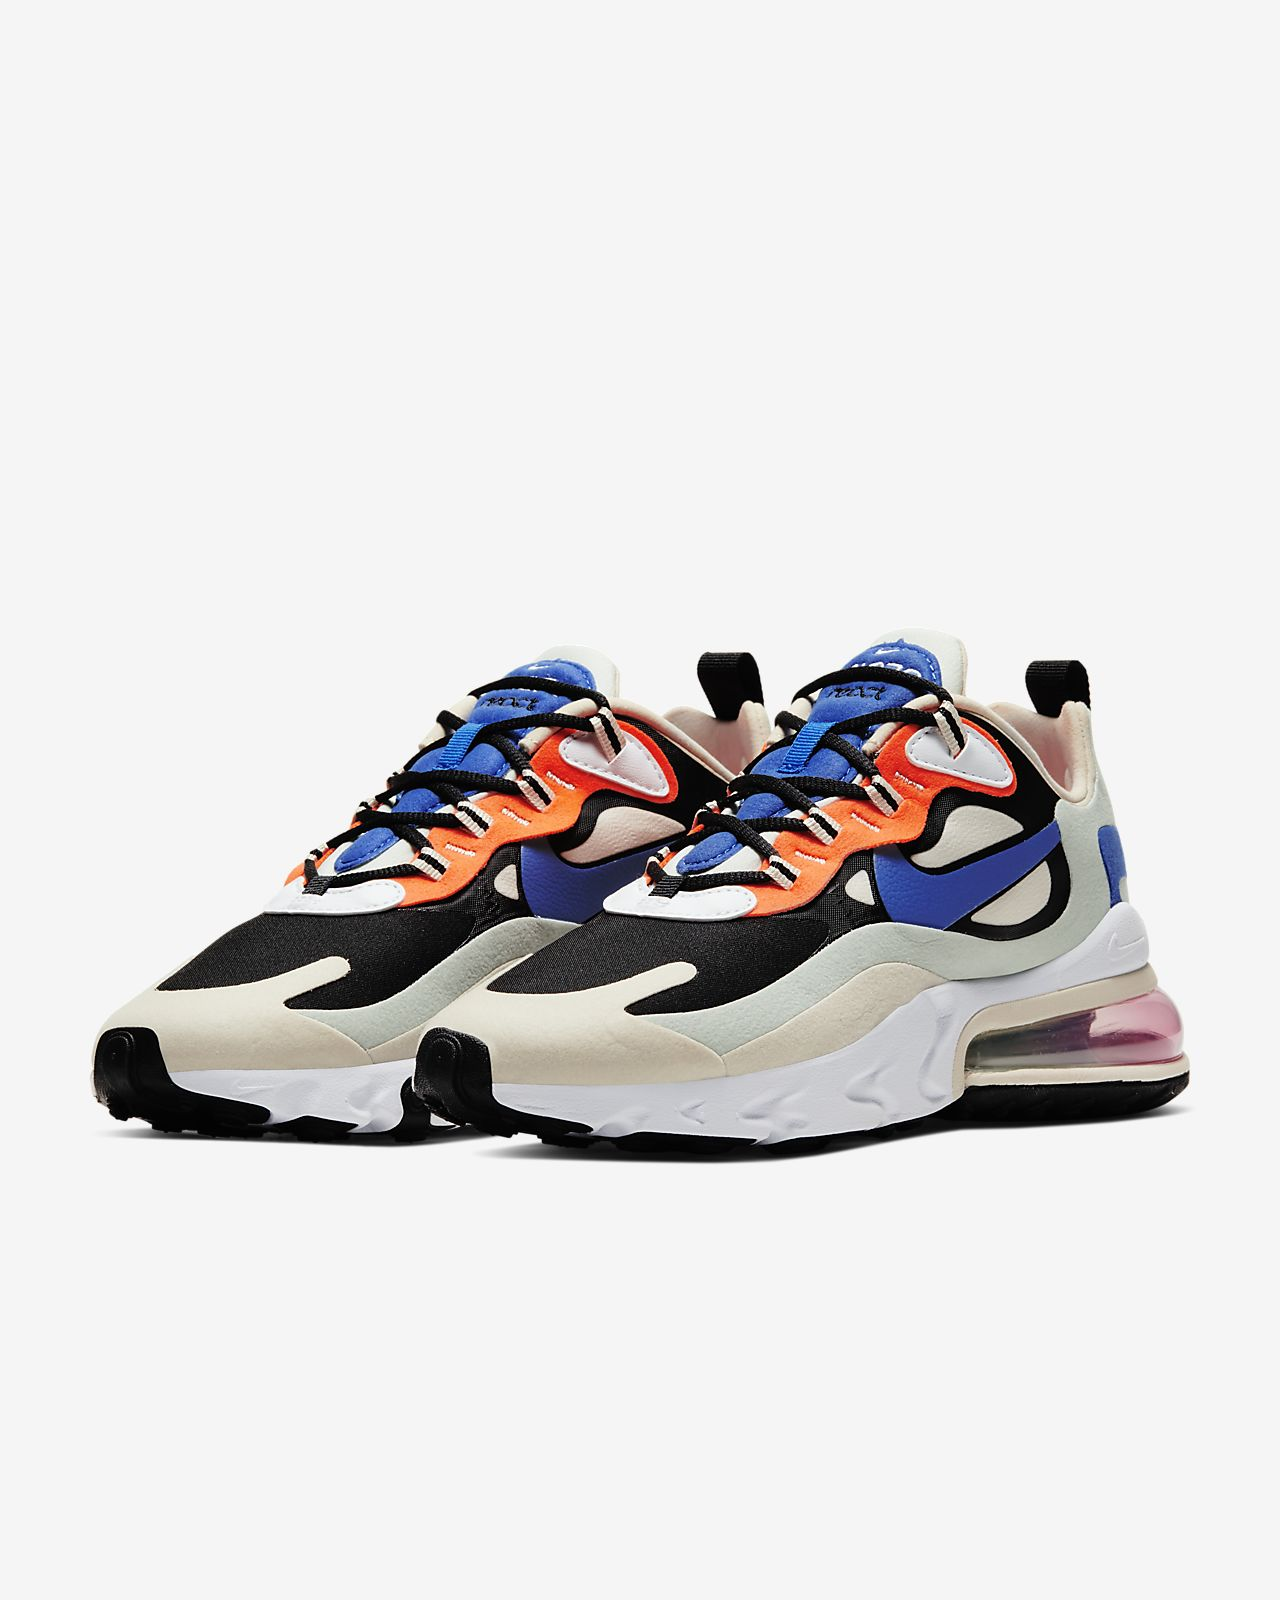 is nike air max 270 good for basketball